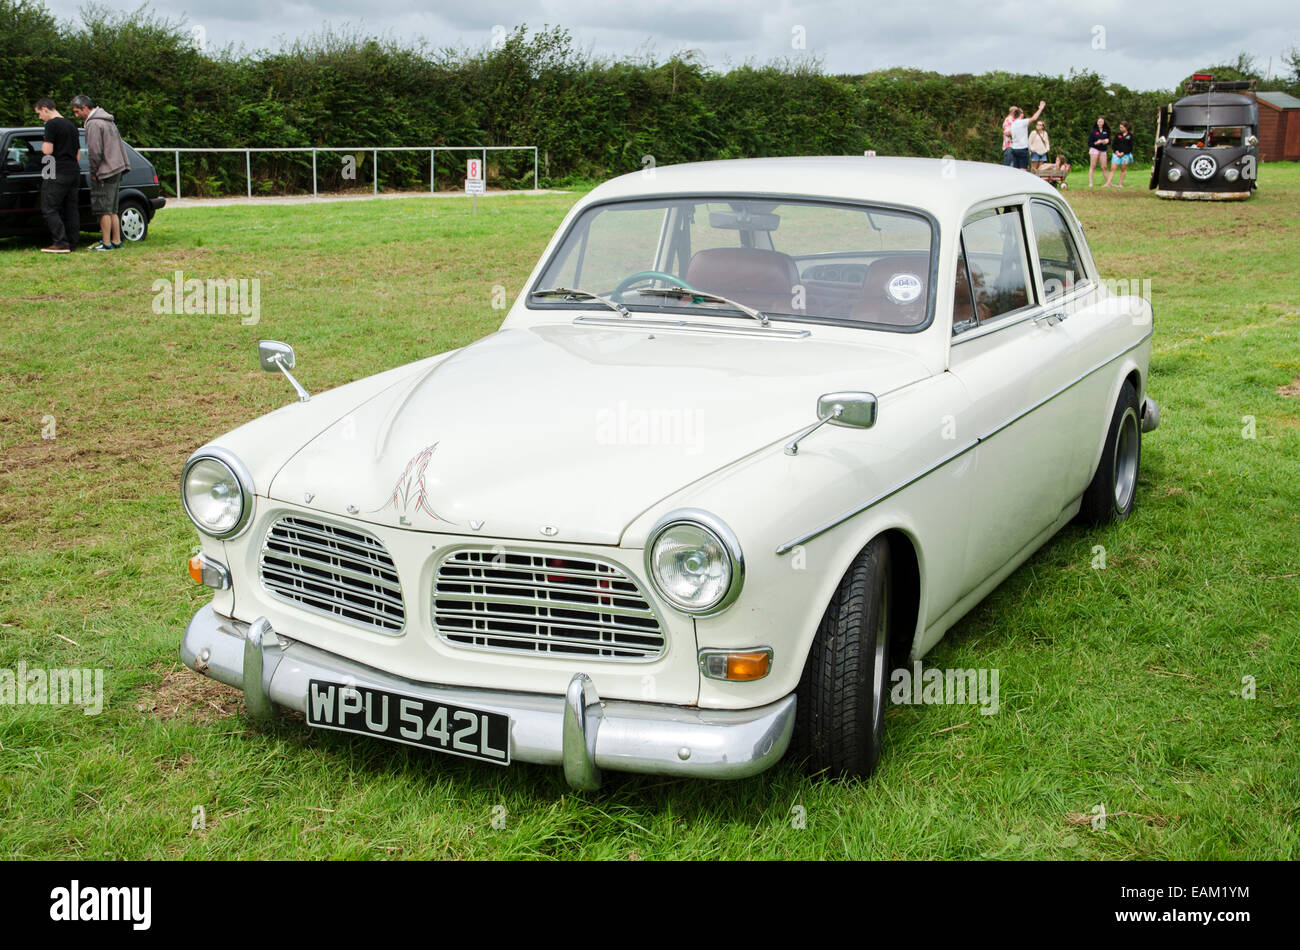 A Volvo 123 at a vintage car rally in Cornwall, UK - Stock Image